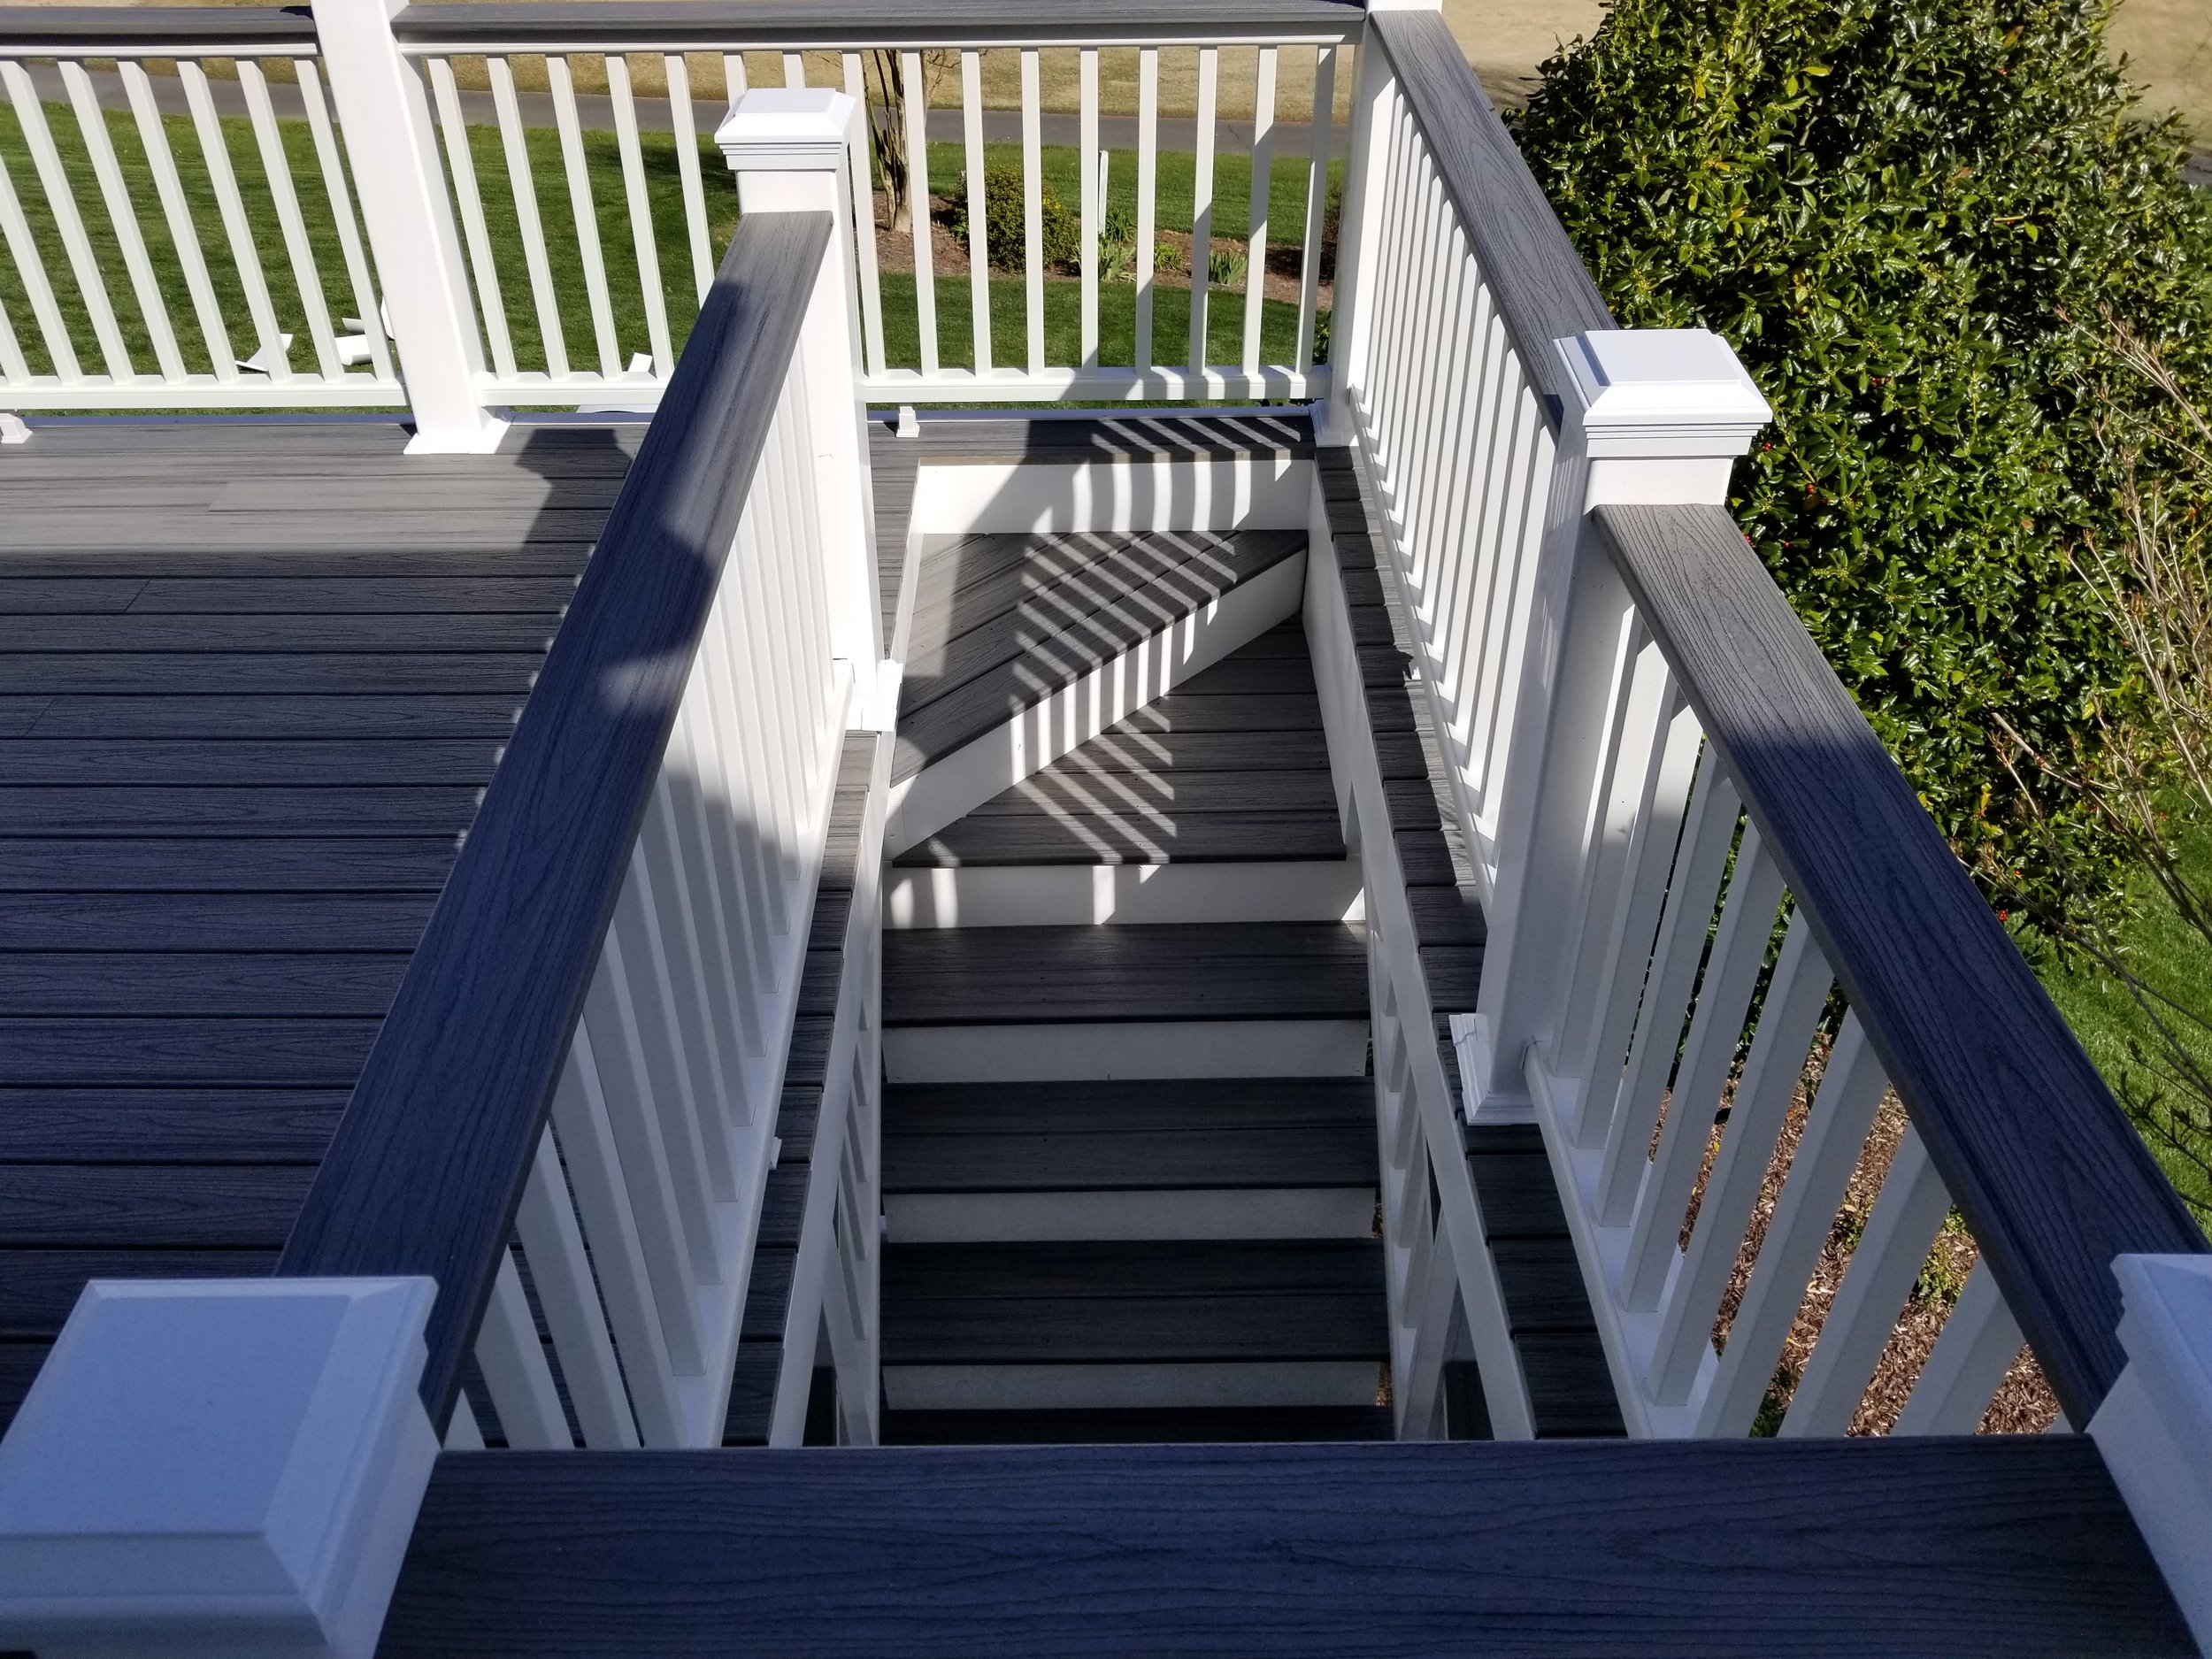 New Composite Trex Deck 1000 SQ. Feet (Jonesborough, Tn)